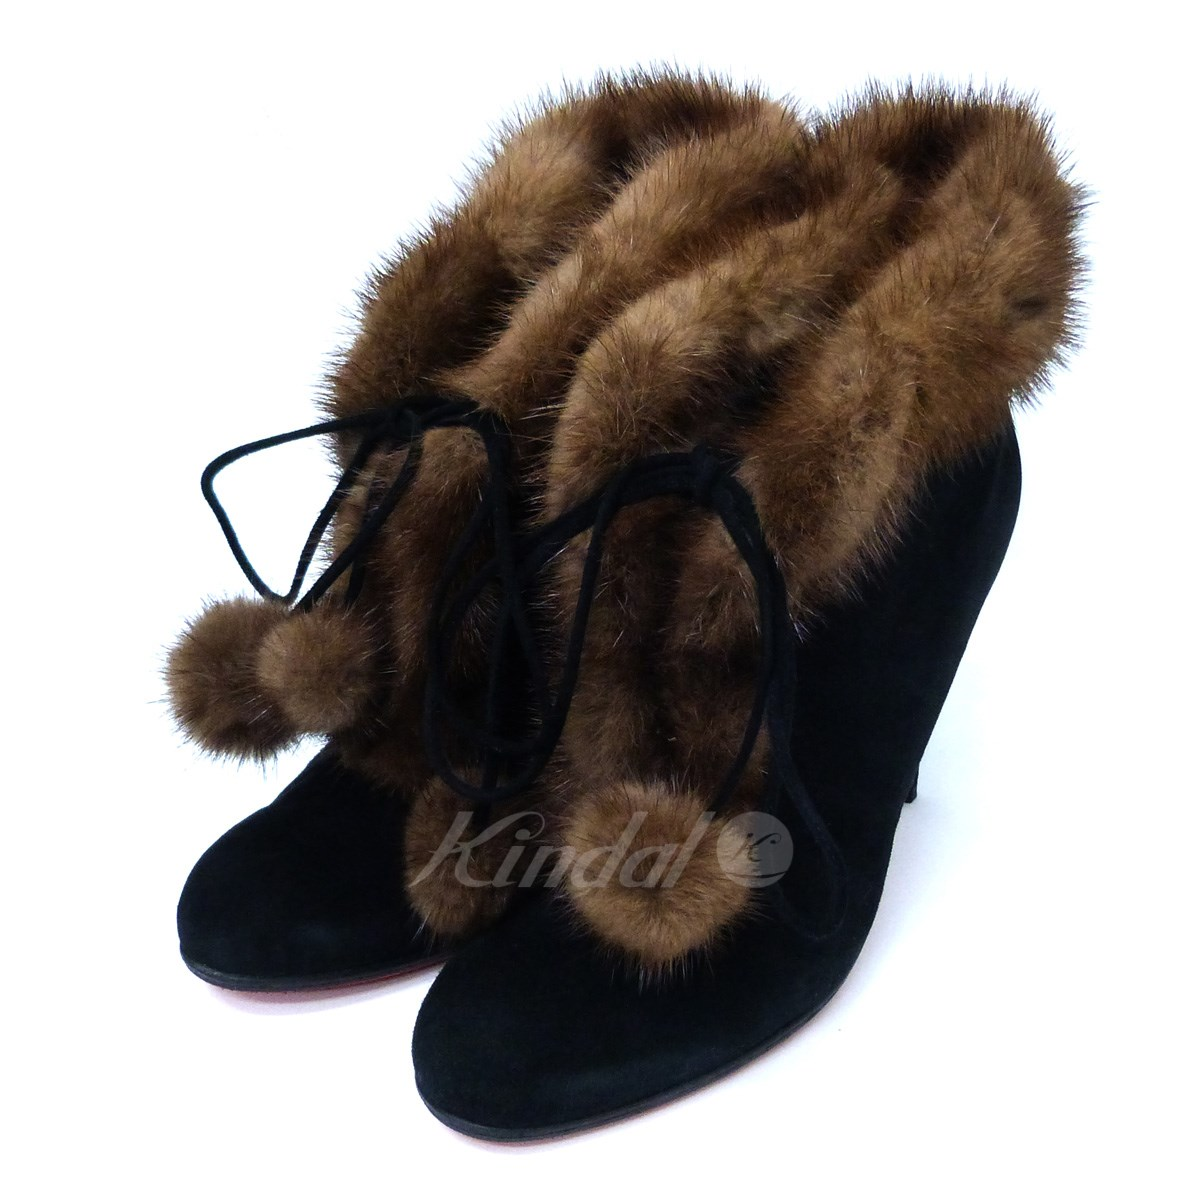 low priced e0665 71290 CHRISTIAN LOUBOUTIN fur design booties boots black size: 39 (クリスチャンルブタン)